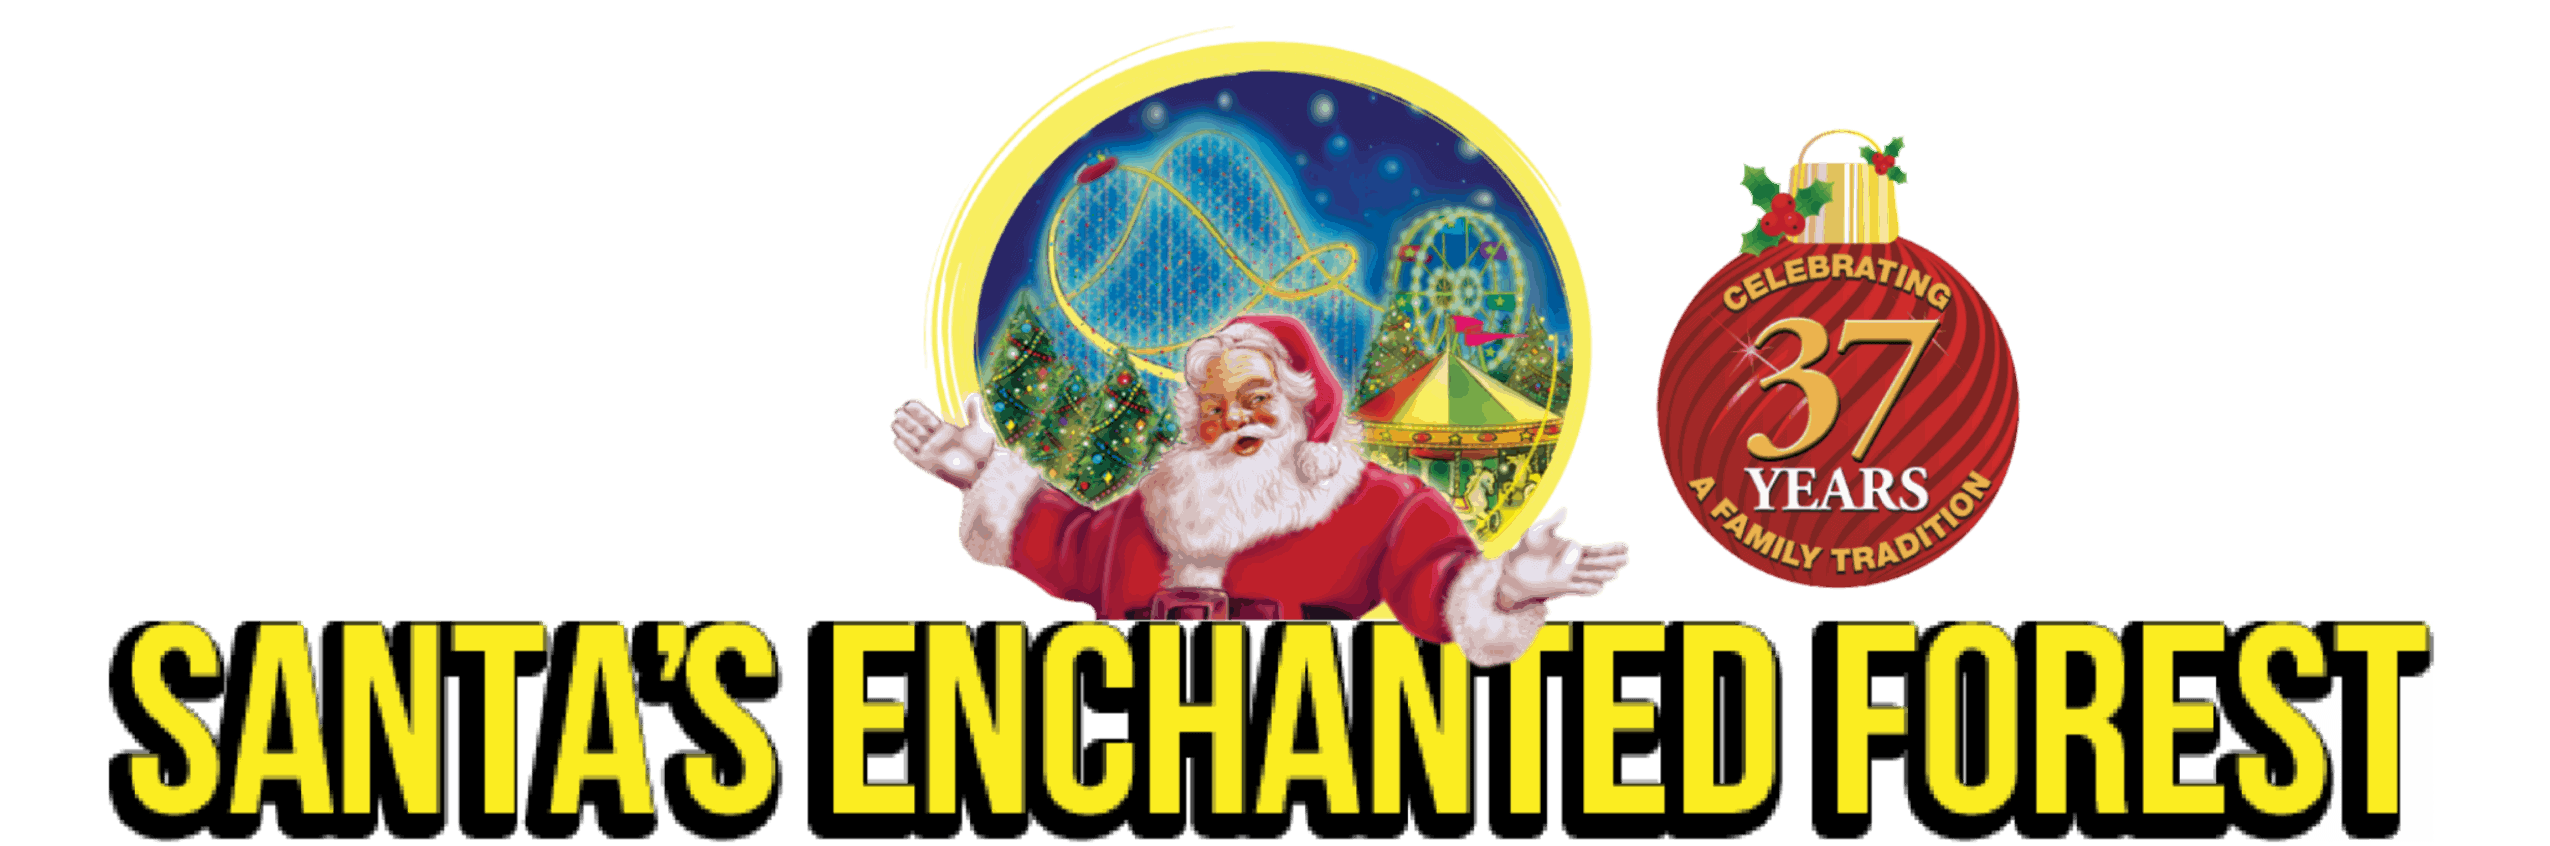 Christmas Shows In Miami 2020 Santa's Enchanted Forest | World's Largest Holiday Theme Park